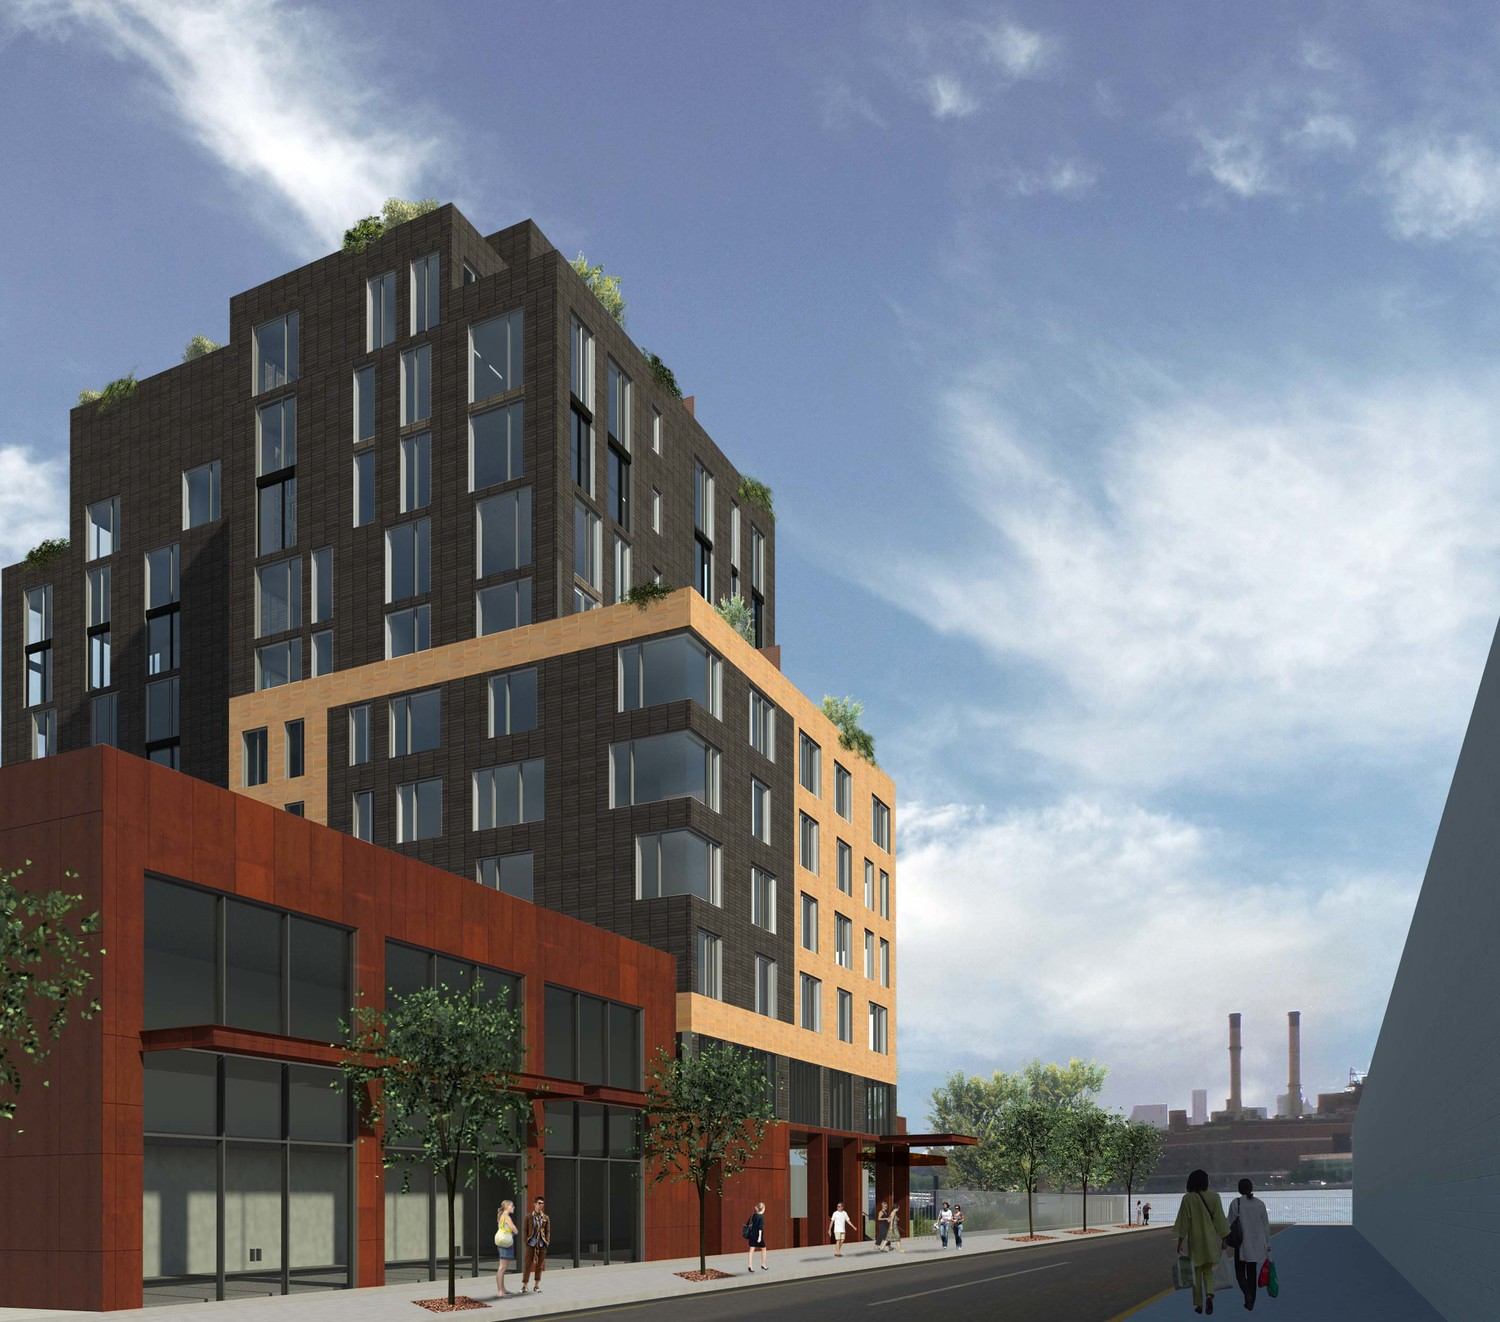 Proposal for 13 Greenpoint Avenue. rendering by Kutnicki Bernstein Architects